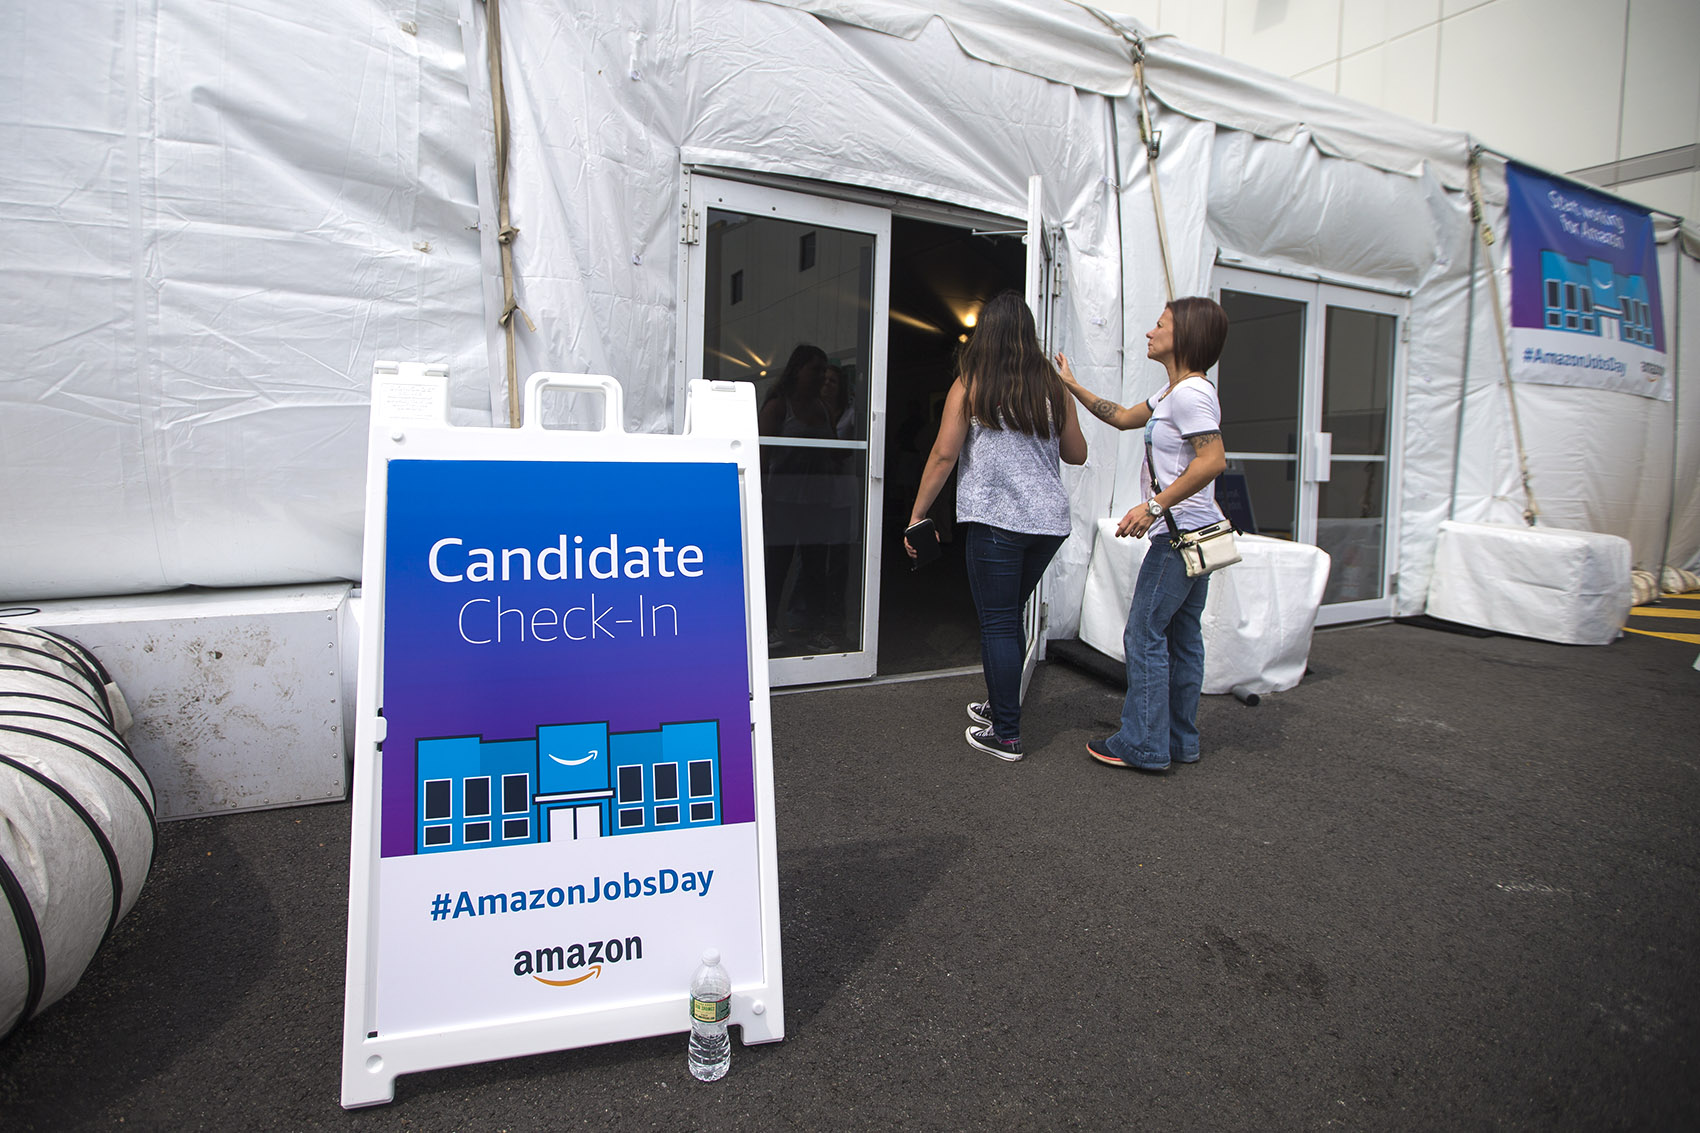 About 400 people filled out applications at Amazon's Fall River warehouse Wednesday morning as part of a national hiring spree. (Jesse Costa/WBUR)